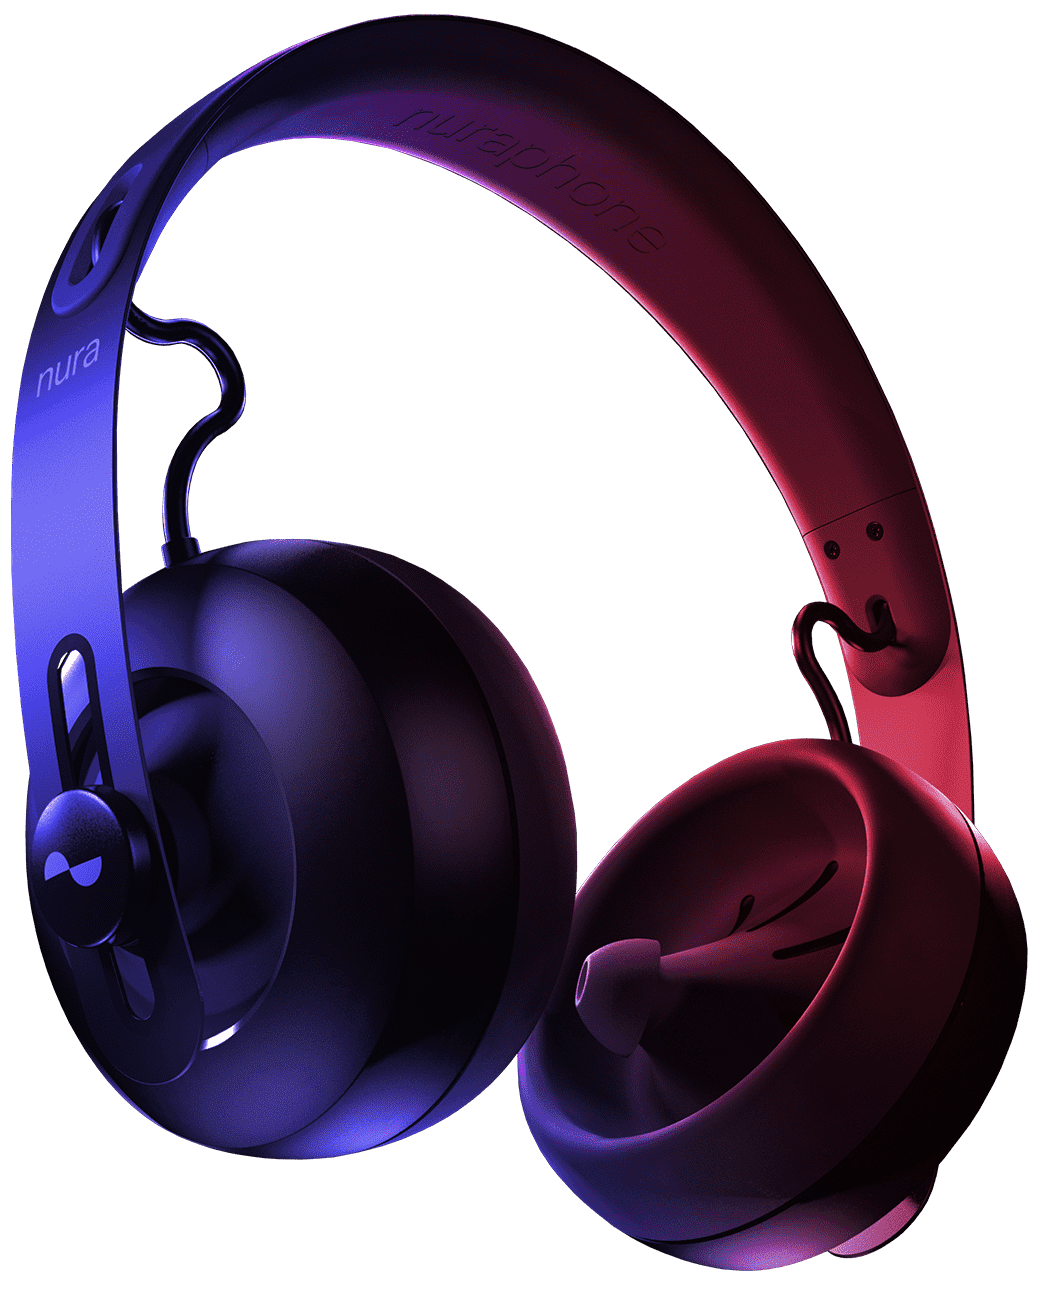 4a9a1ac2b22 The nuraphone | Headphones reinvented